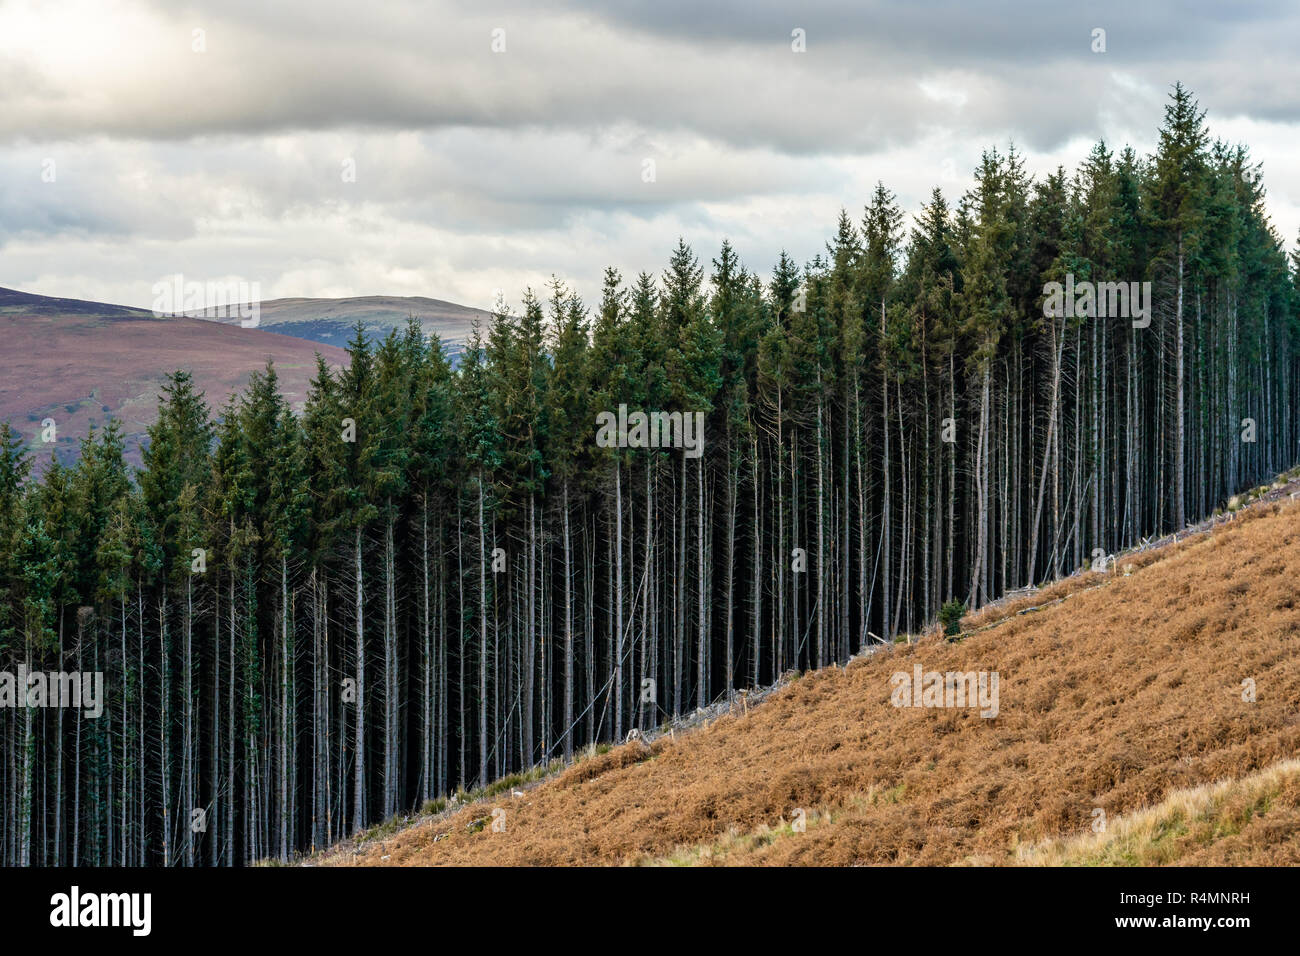 Rows of non-native conifer trees in the Brecon Beacons National Park at Tor-y-foel, Powys, Wales, UK - Stock Image